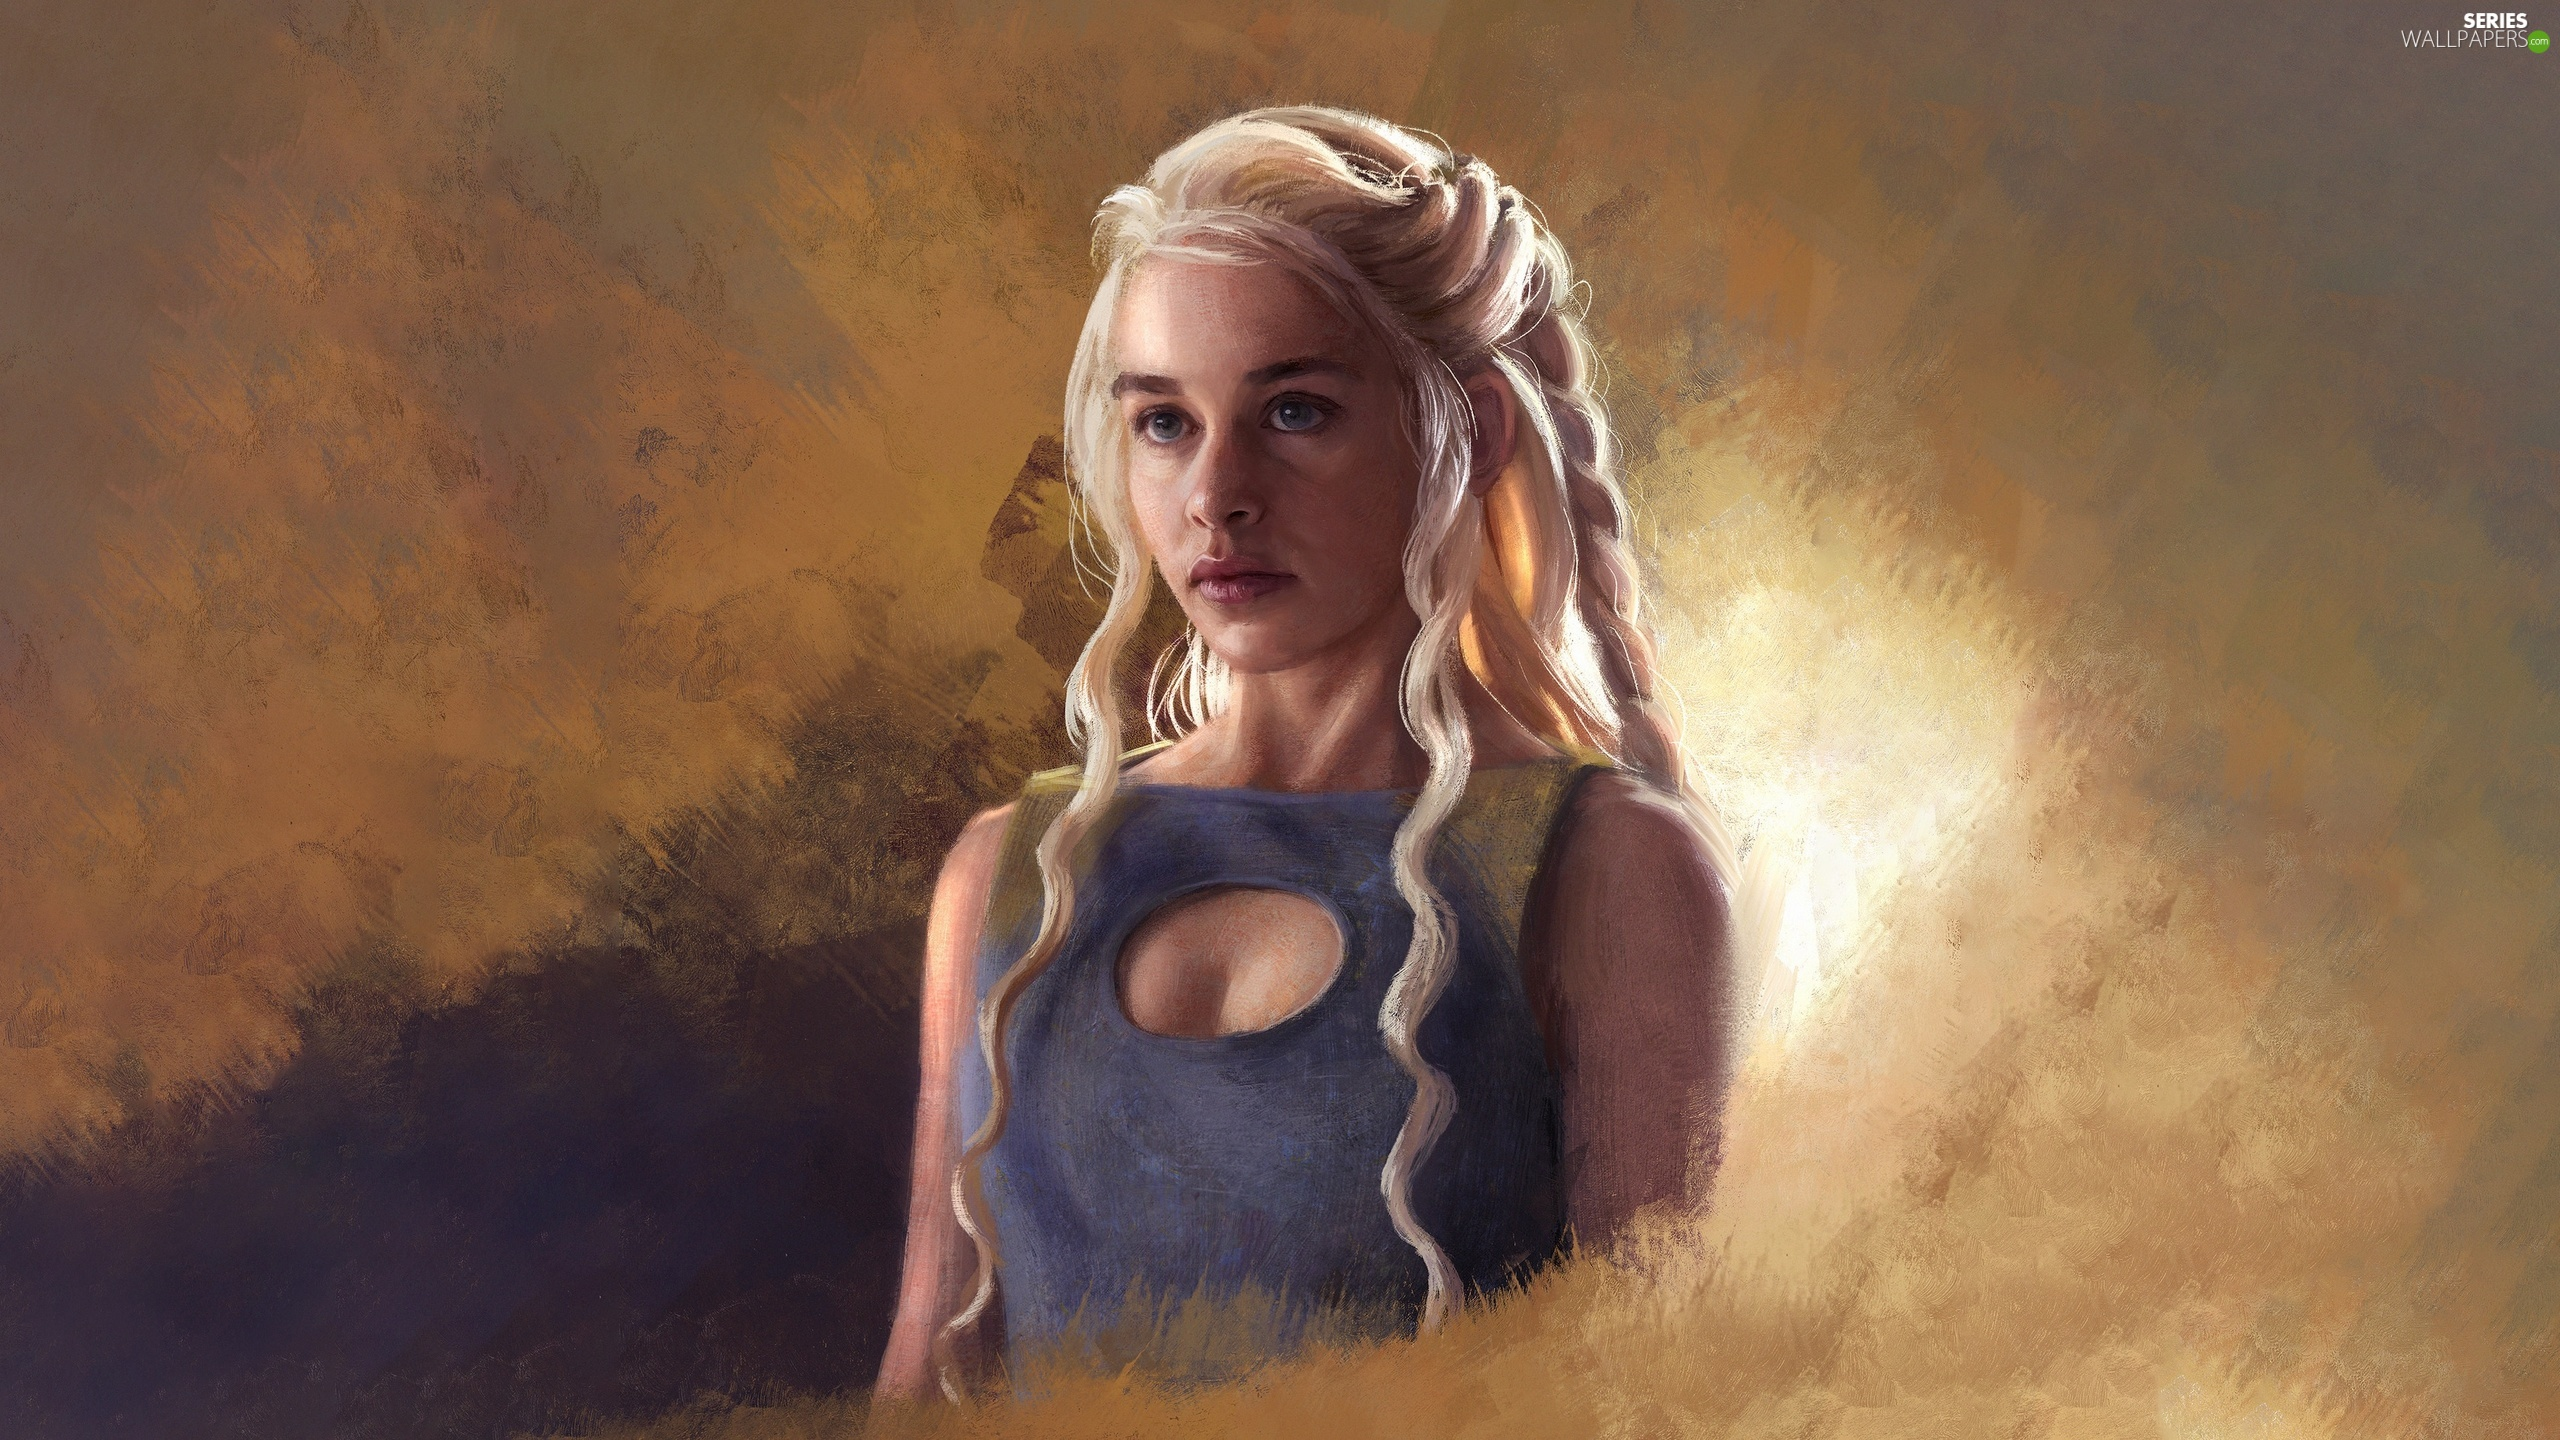 Game Of Thrones, series, actress, Emilia Clarke, Daenerys Targaryen, Game of Thrones